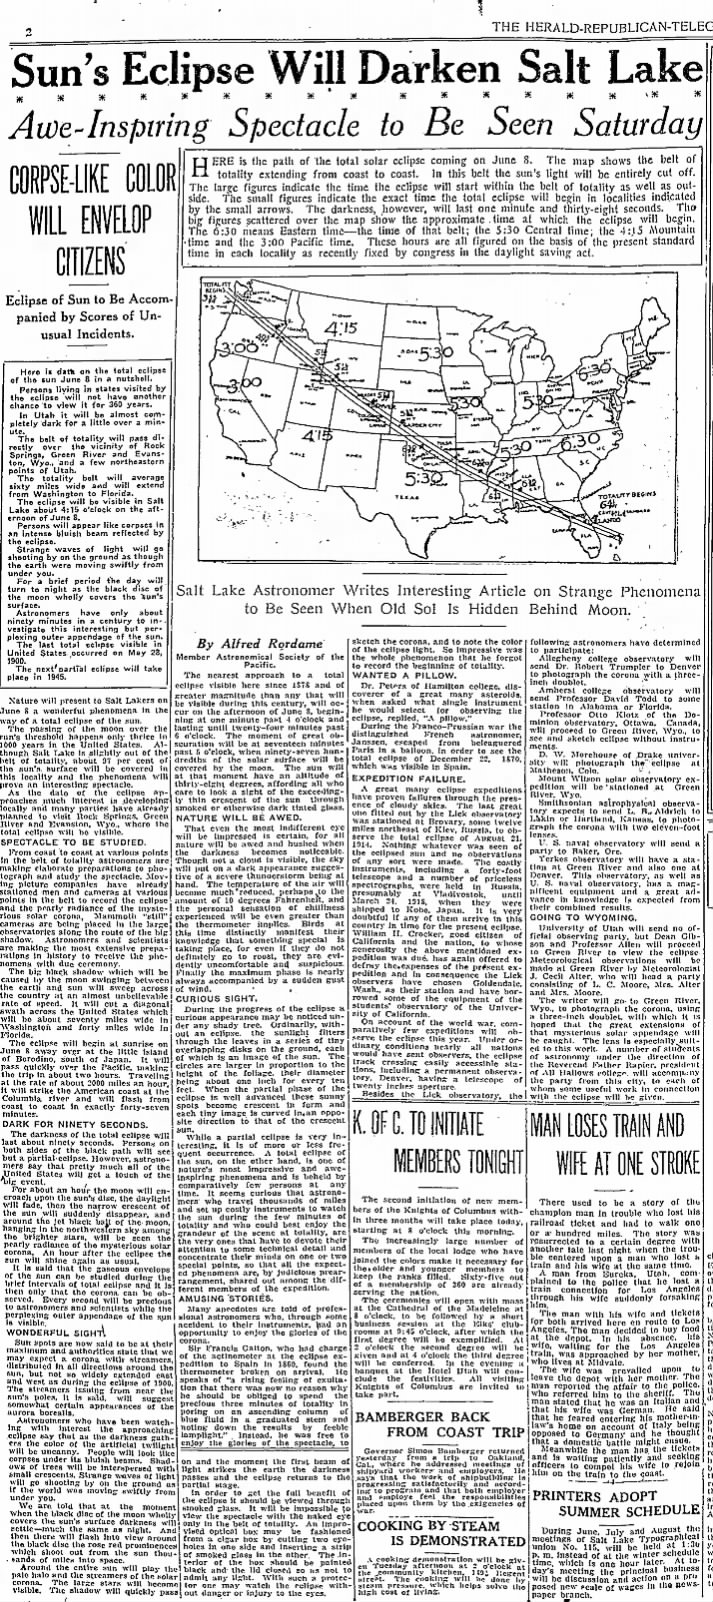 The Salt Lake Herald Republican Telegram 02 June 1918